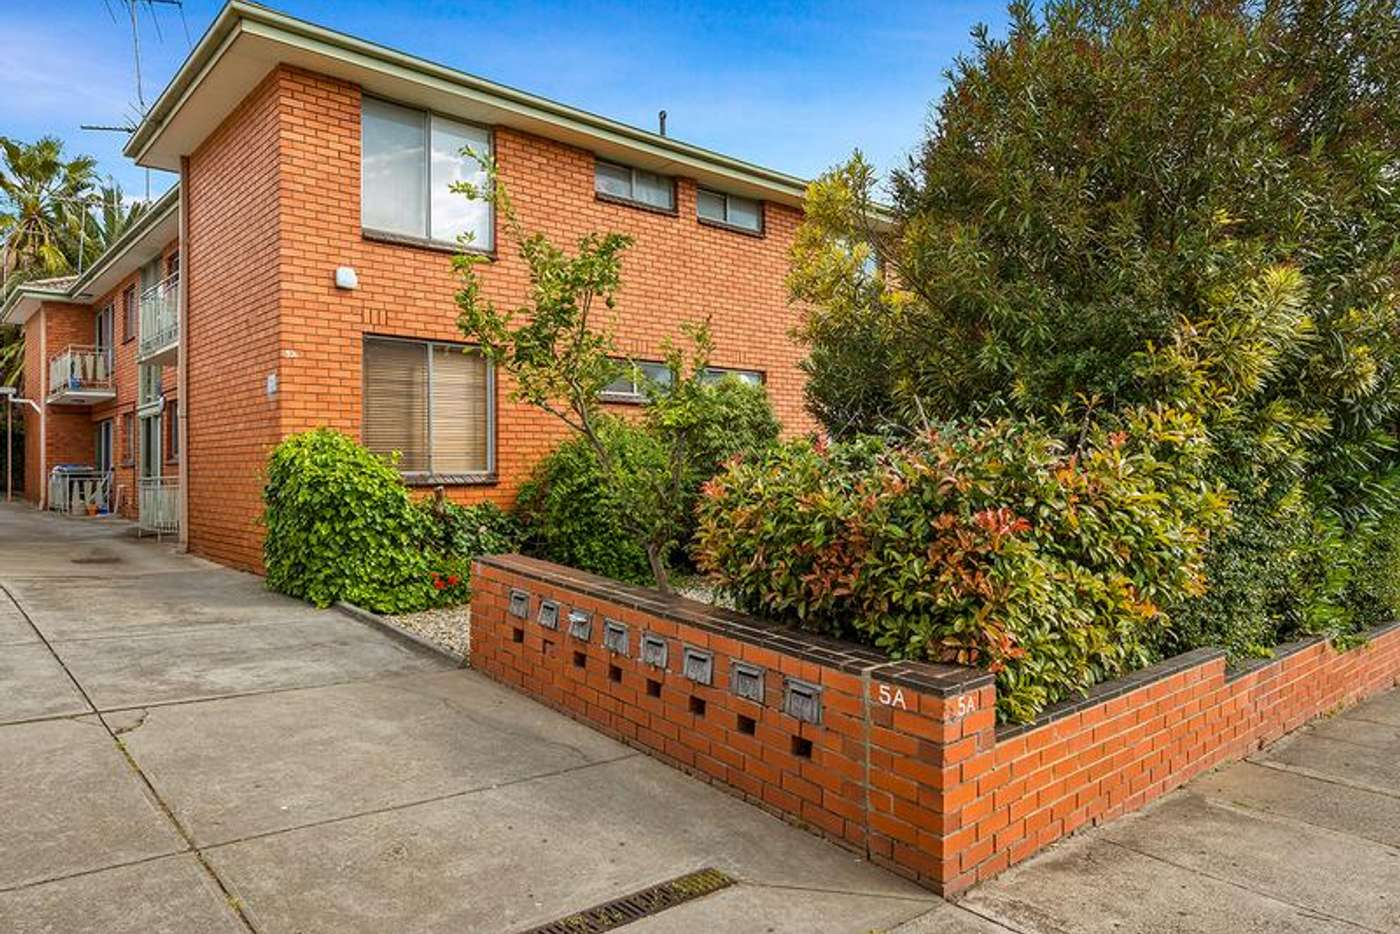 Main view of Homely apartment listing, 6/5A Rusden Street, Elsternwick VIC 3185